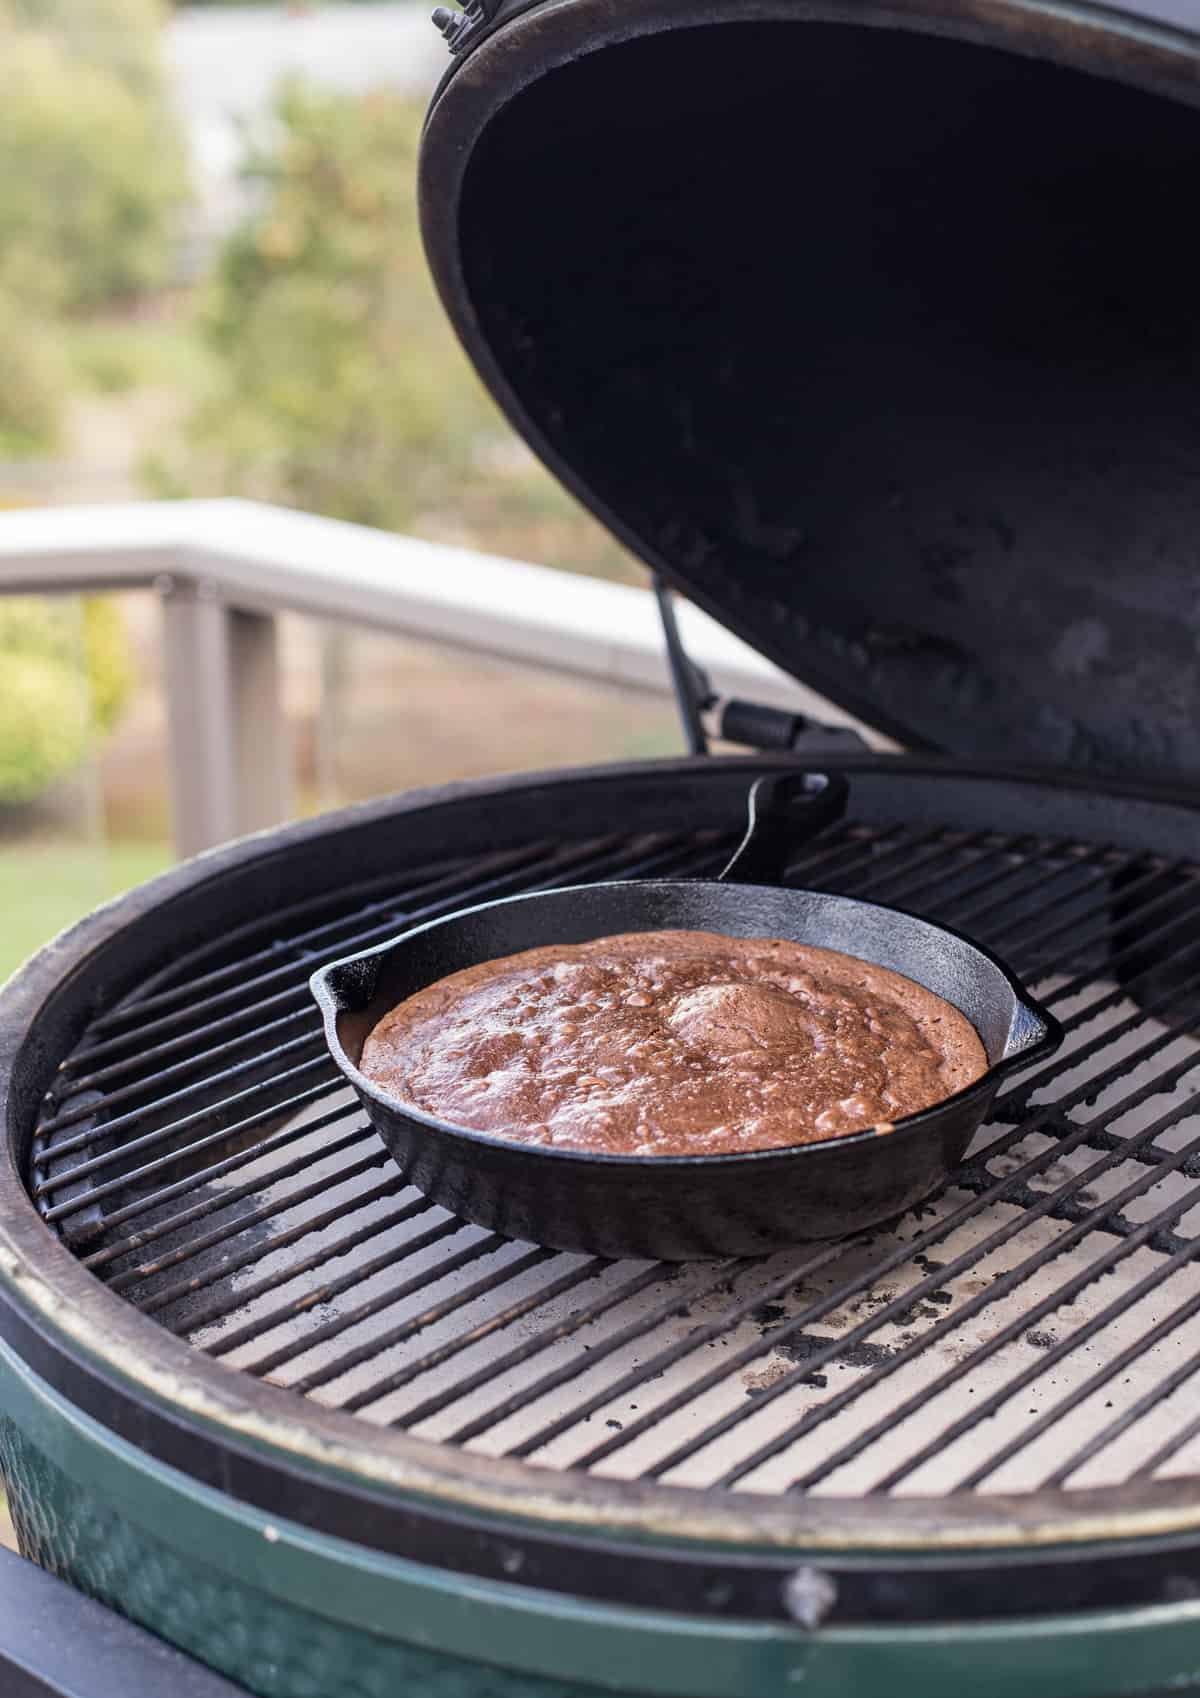 Cast Iron Pan full of brownies cooking on a Big Green Egg grill